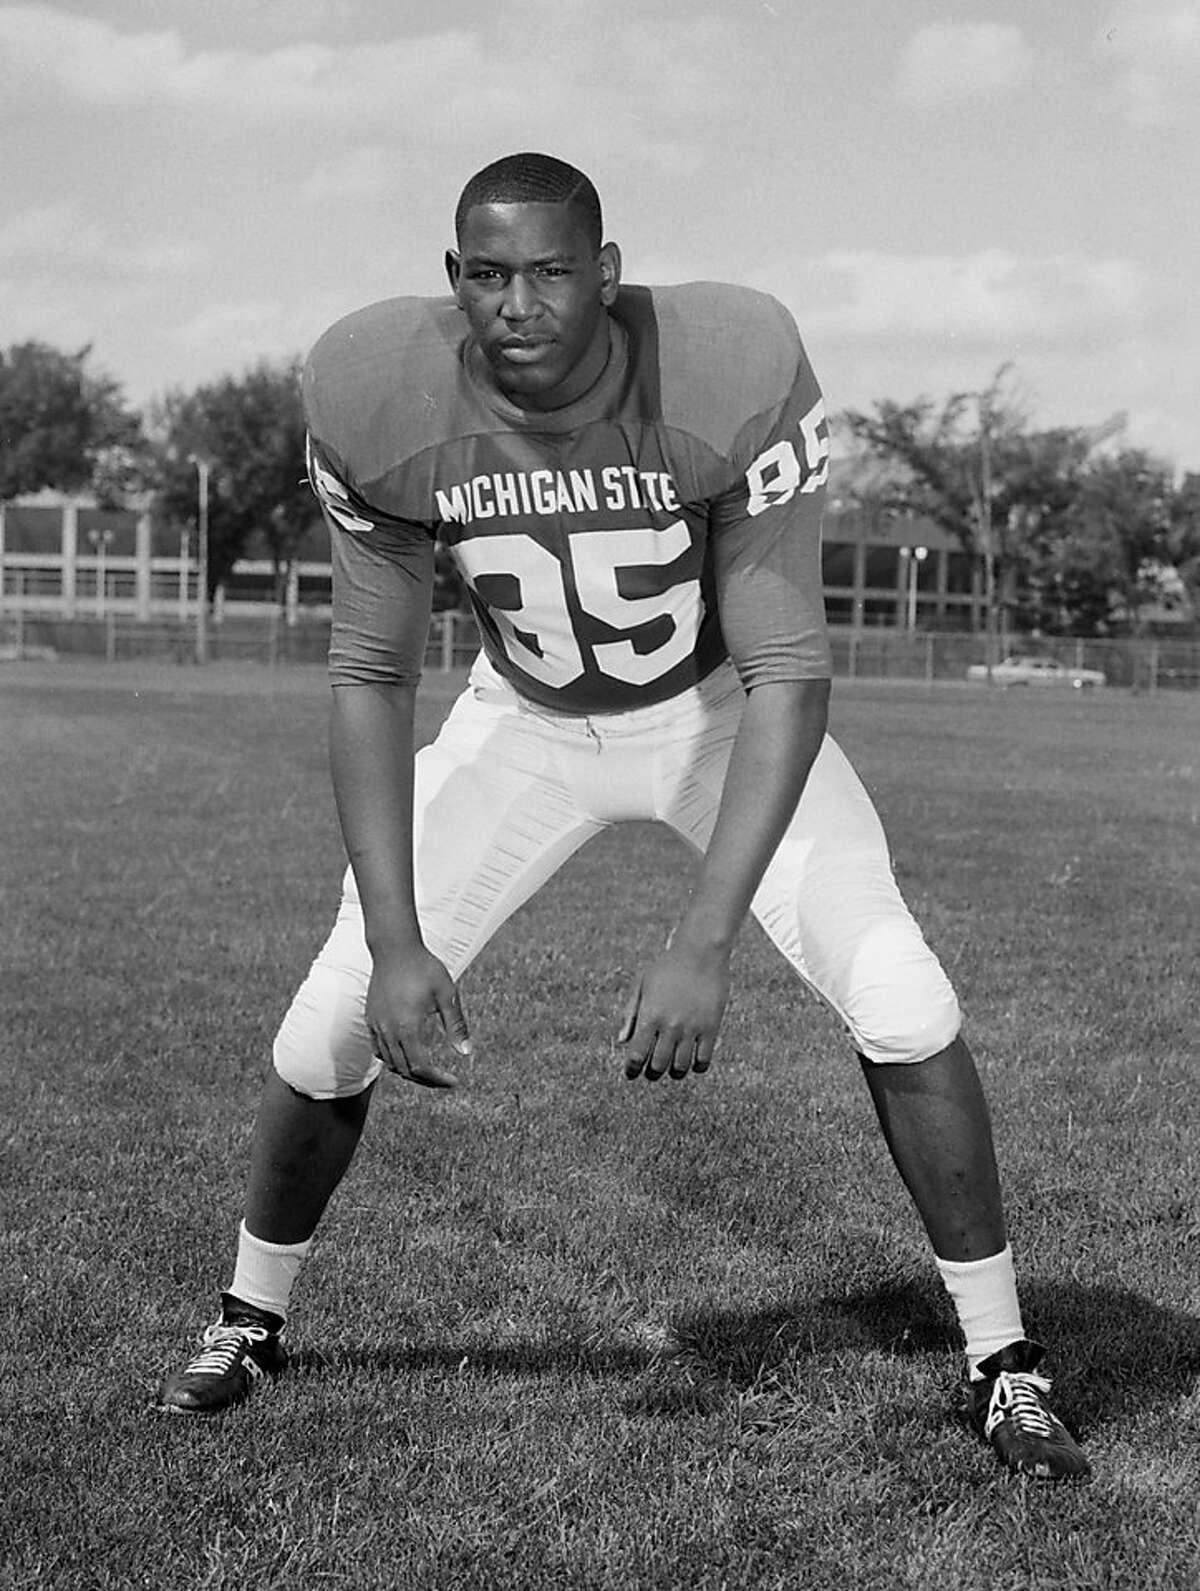 In a photo provided by Michigan State University, date not known, Michigan State football player Bubba Smith poses for a photo. The top overall pick in the 1967 draft after a sensational career at Michigan State, Smith spent five seasons with the Baltimore Colts and two seasons each with Oakland and Houston. He won the 1971 Super Bowl with the Colts. Smith, who found a successful second career as an actor, died Wednesday, Aug. 3, 2011, in Los Angeles at age 66. Los Angeles County coroner's spokesman Ed Winter said Smith was found dead at his Baldwin Hills home. Winter said he didn't know the circumstances or cause of death.